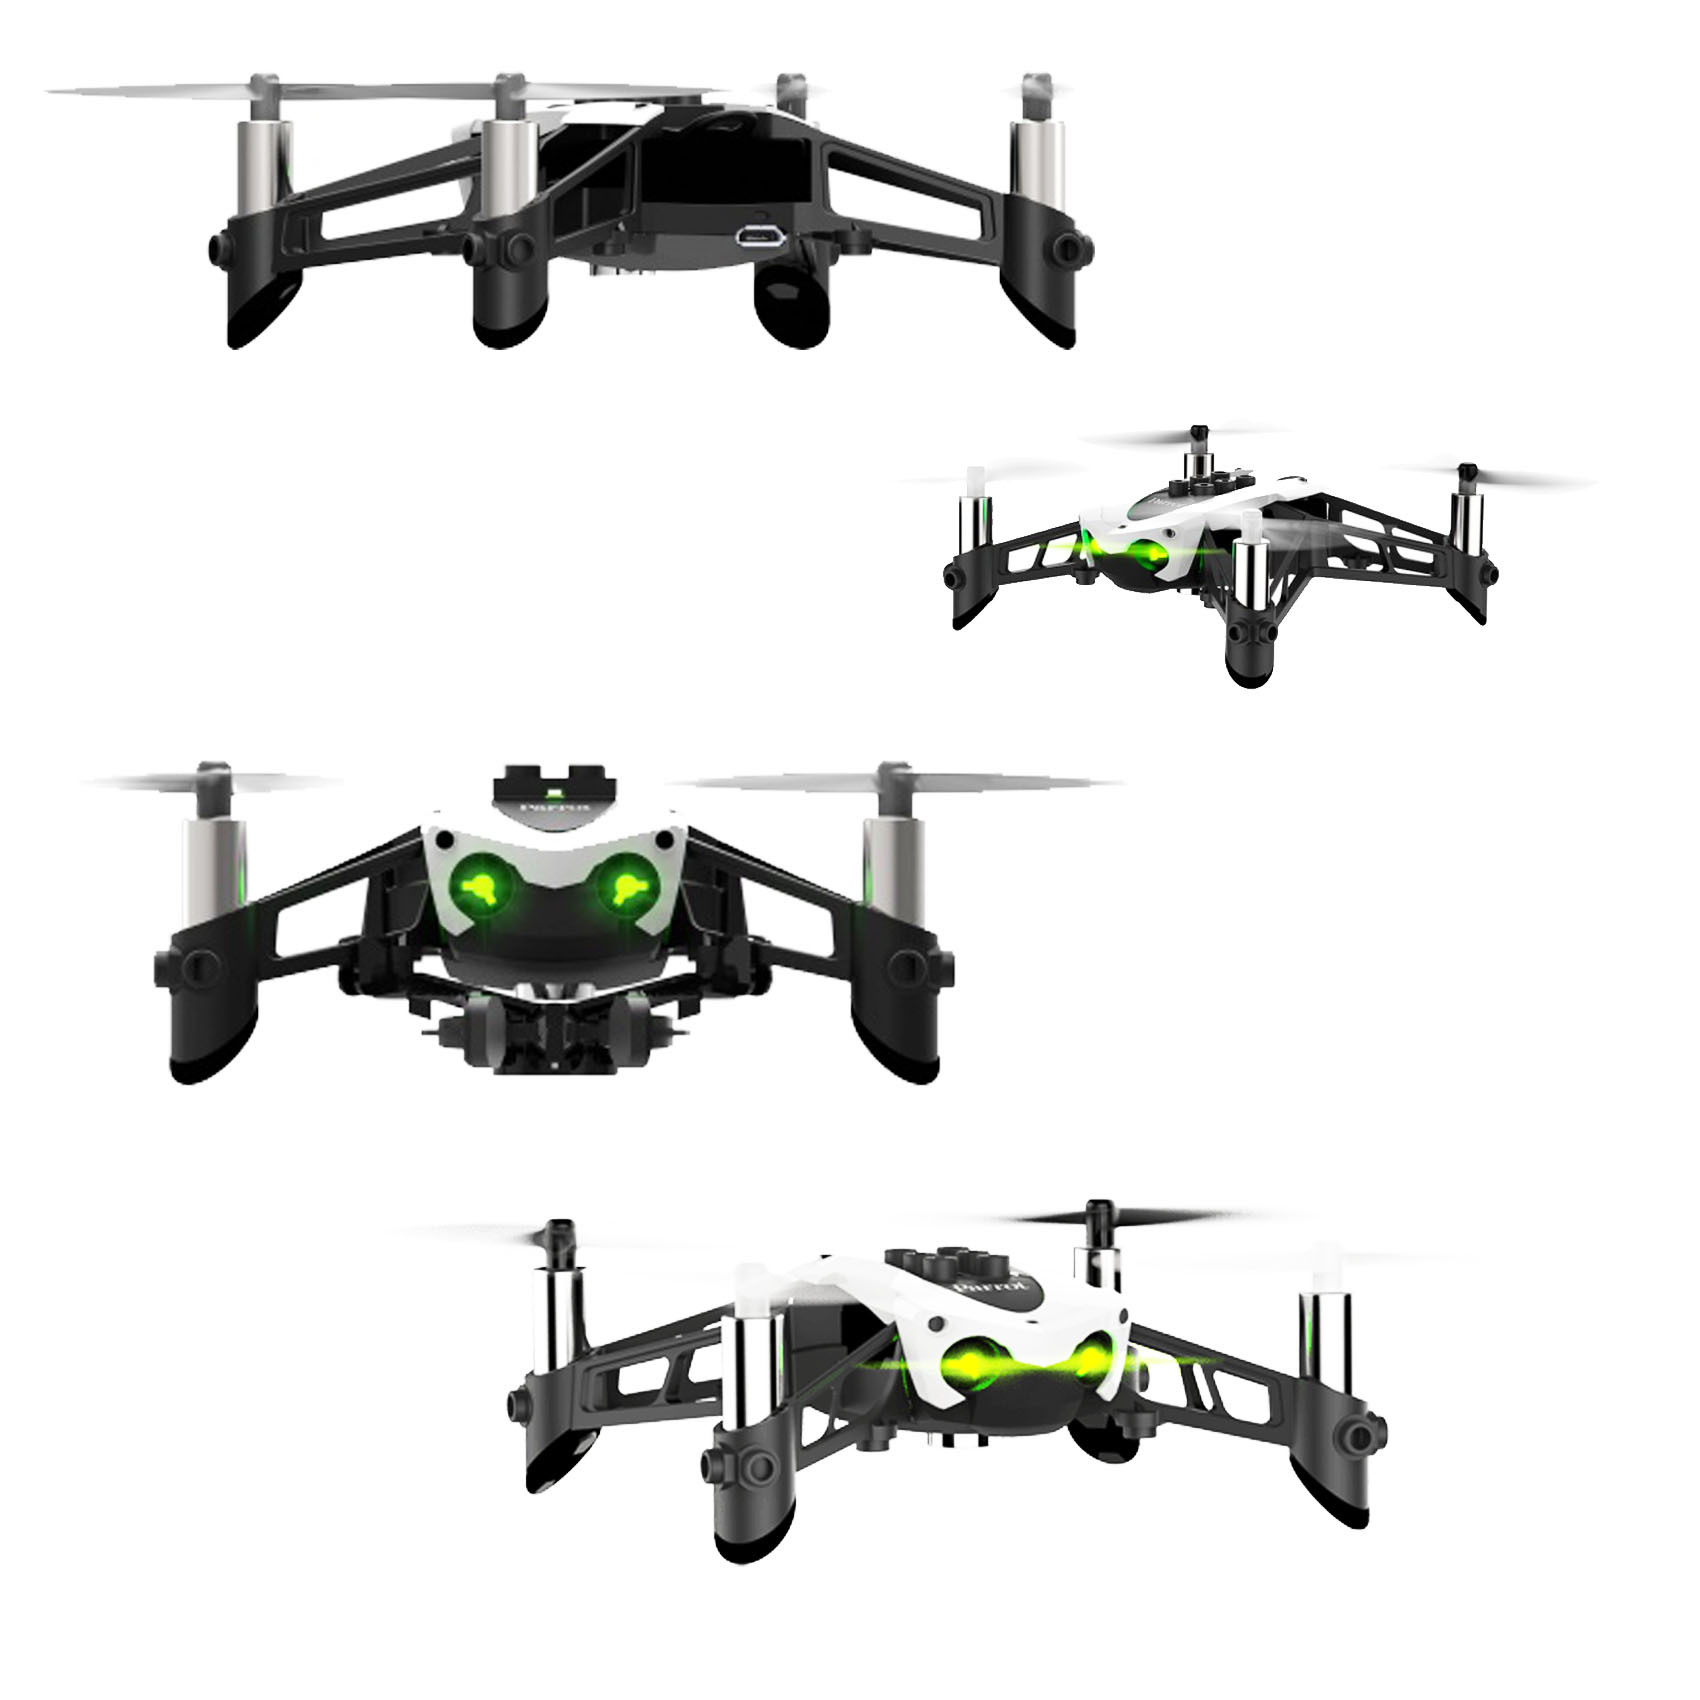 PARROT DRONE MAMBO